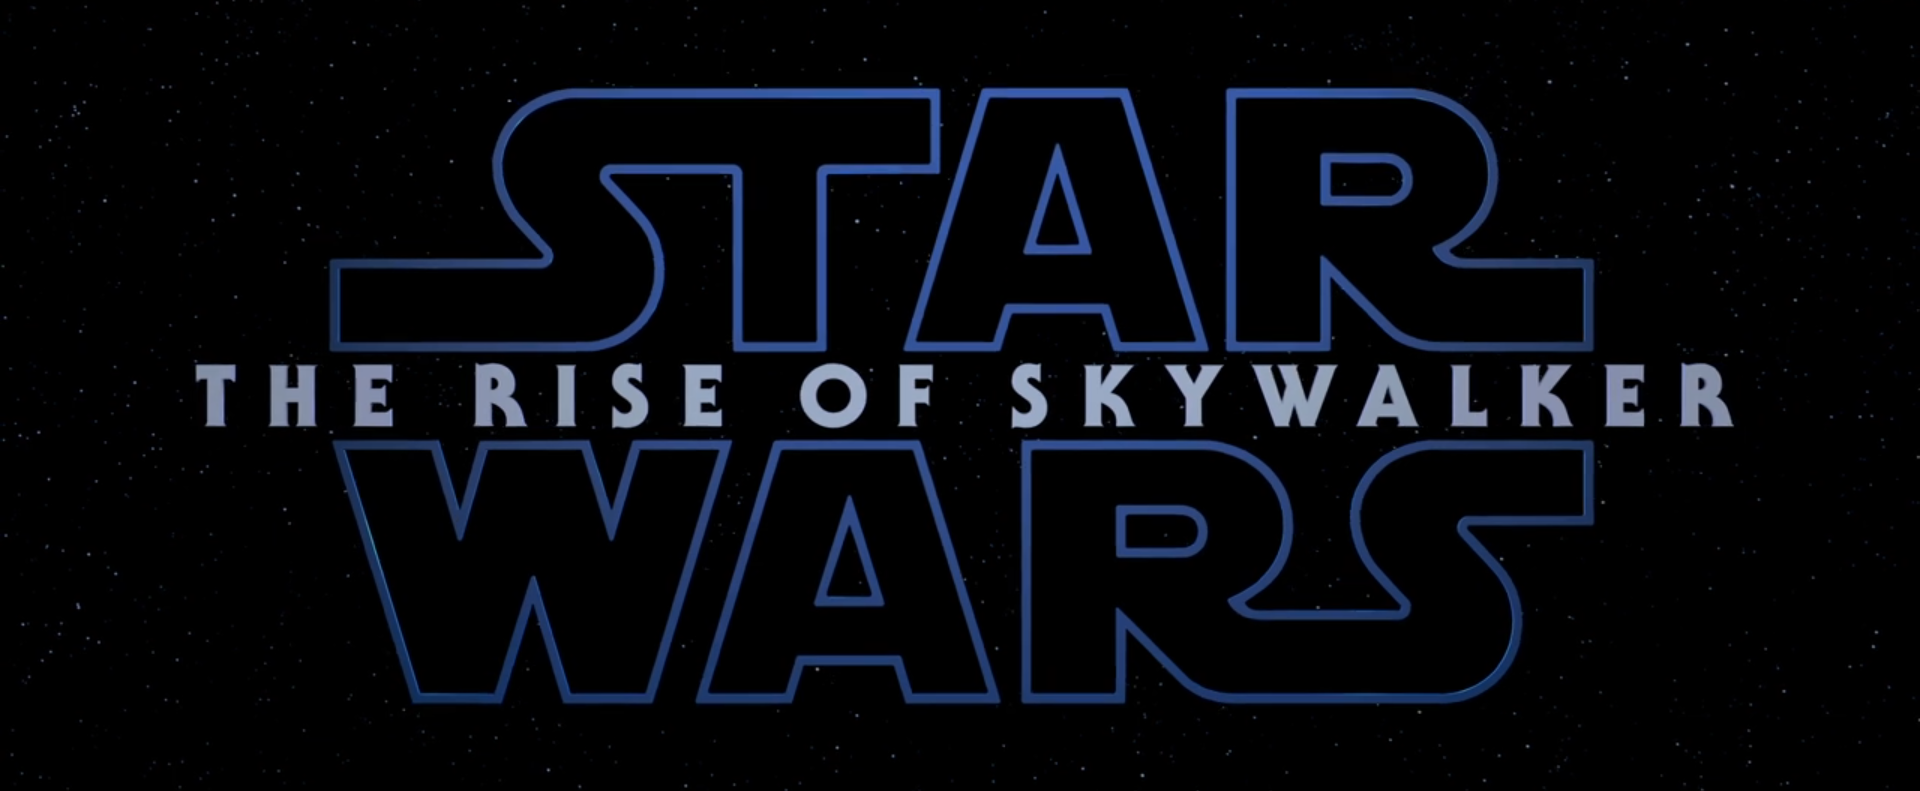 IX | THE RISE OF SKYWALKER é O Nome Do último Capítulo Da Saga Skywalker